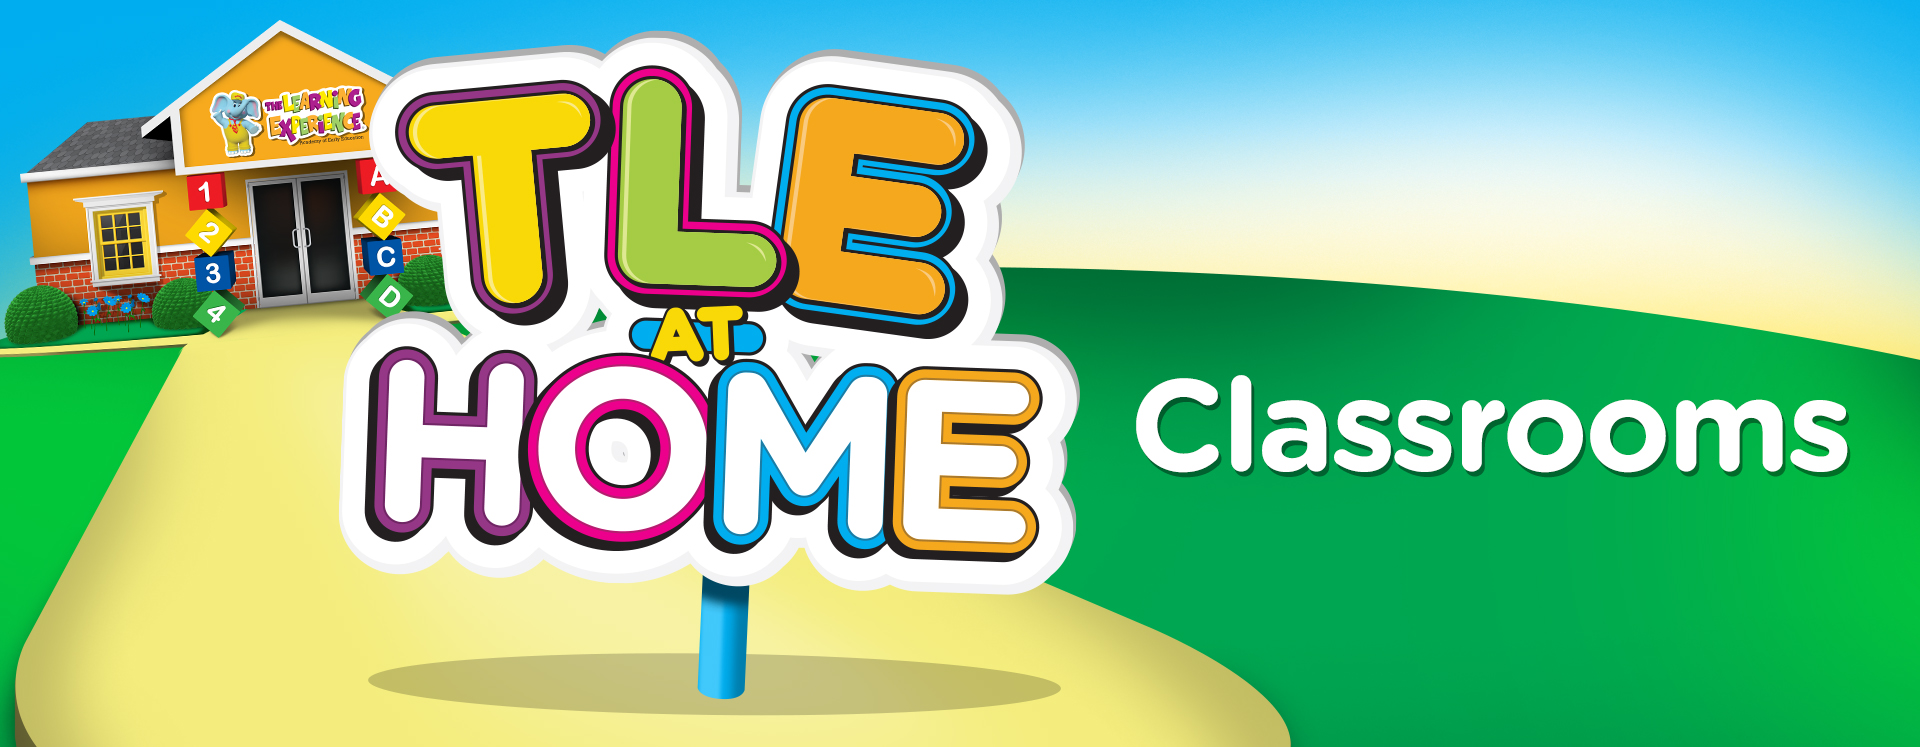 Tle At Home Coverphoto Classrooms